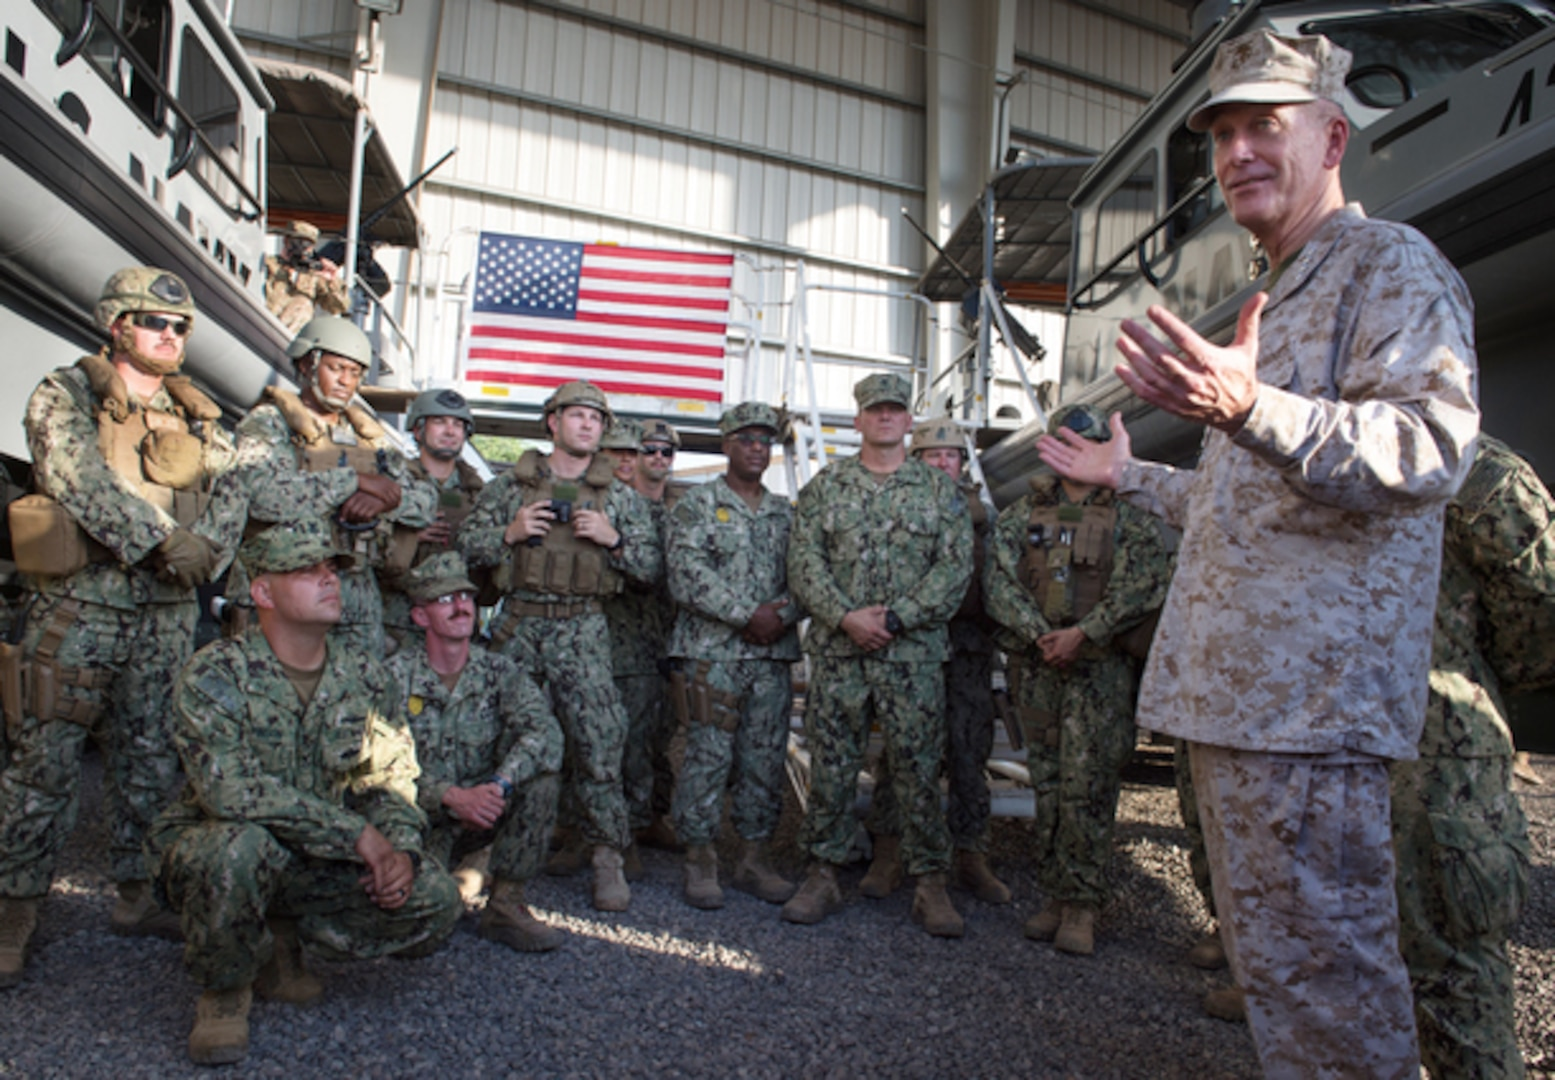 U.S. Marine Gen. Joseph F. Dunford Jr., chairman of the Joint Chiefs of Staff, talks with U.S. Sailors during a visit to Camp Lemonnier, Djibouti, Dec. 6. (DoD photo by D. Myles Cullen/Released)